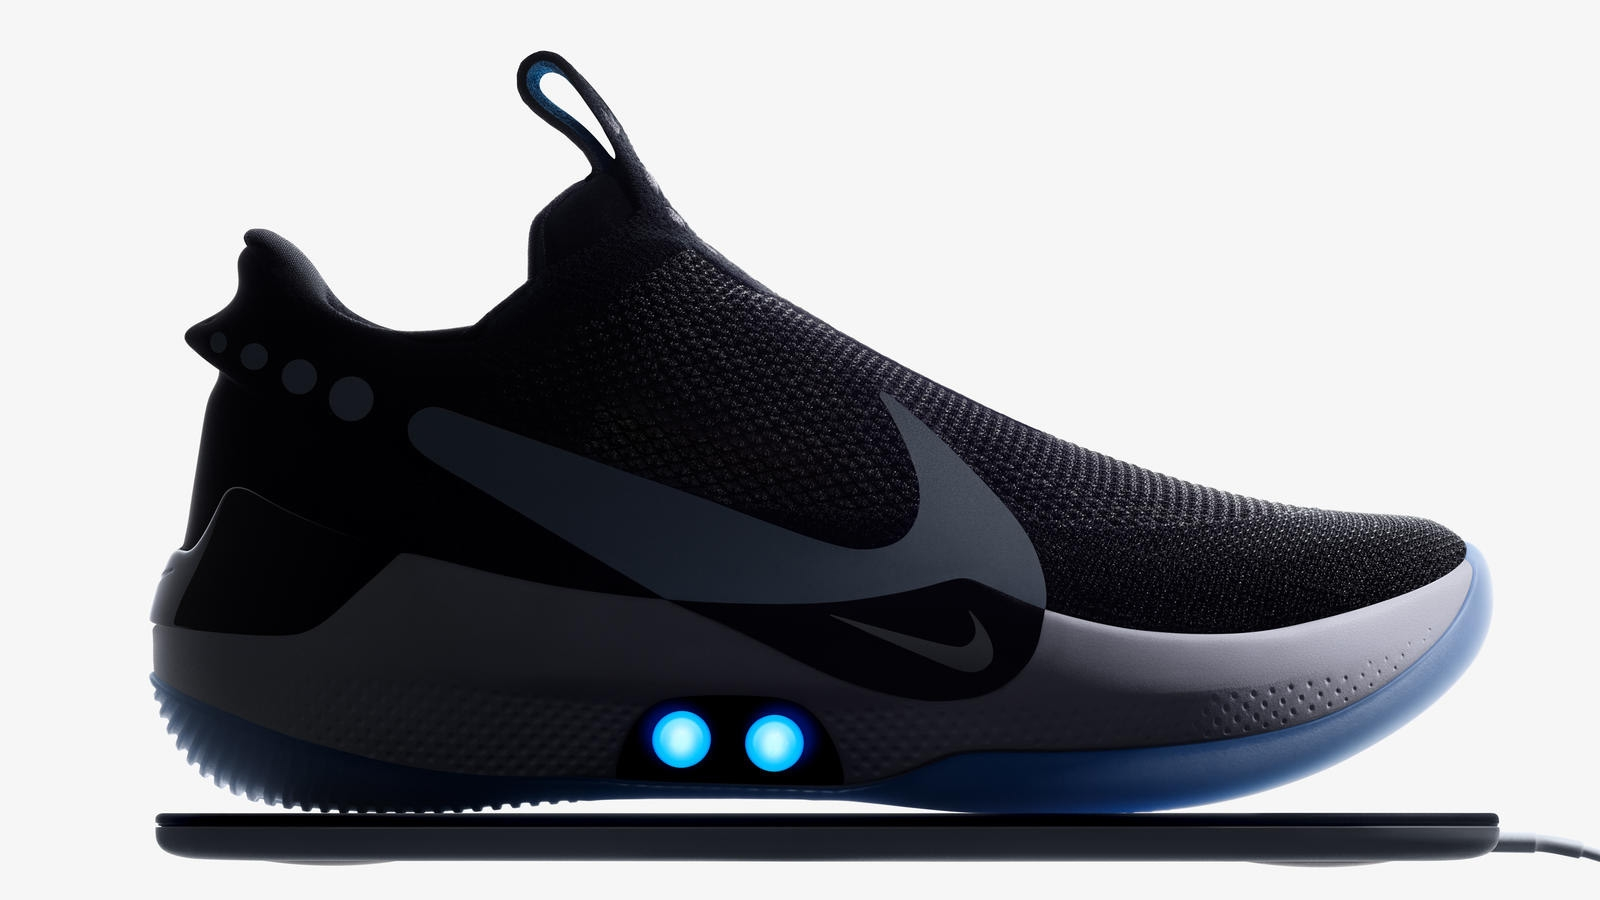 Nike Adapt BB is the Self-Lacing Shoe Which Works With an App